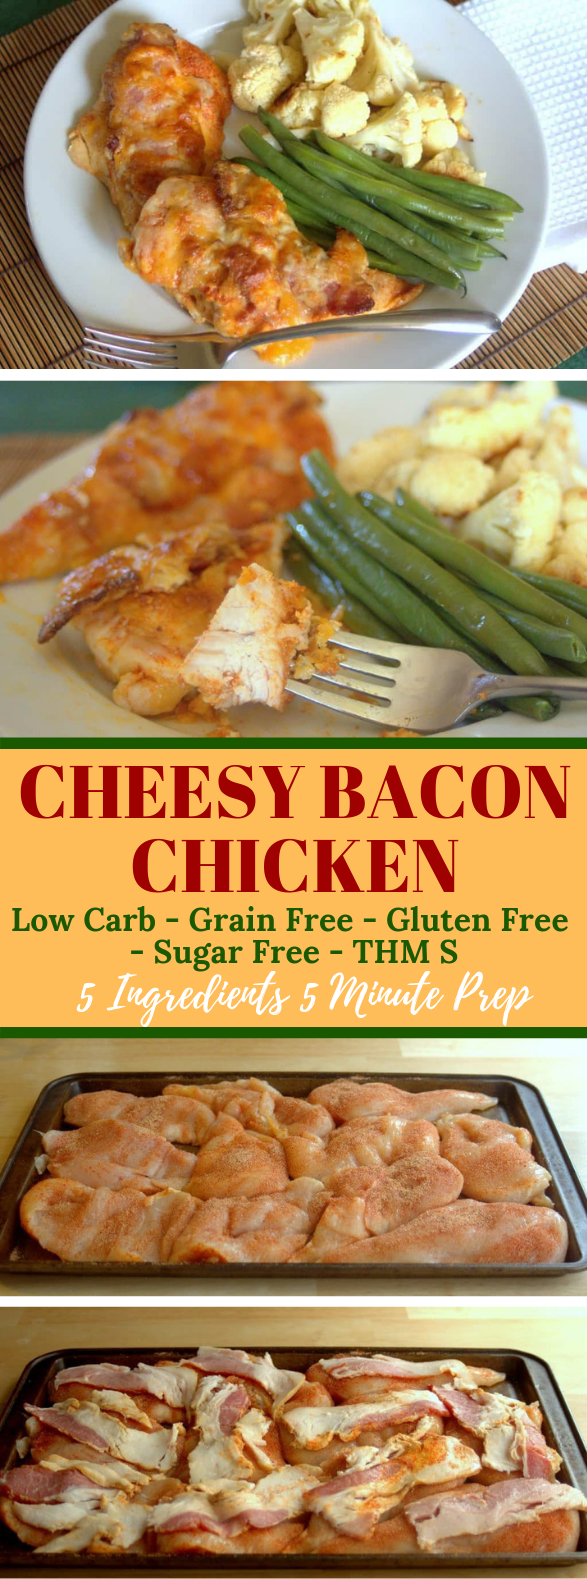 EASY CHEESY BACON CHICKEN – LOW CARB KETO GLUTEN FREE #ketodiet #healthy